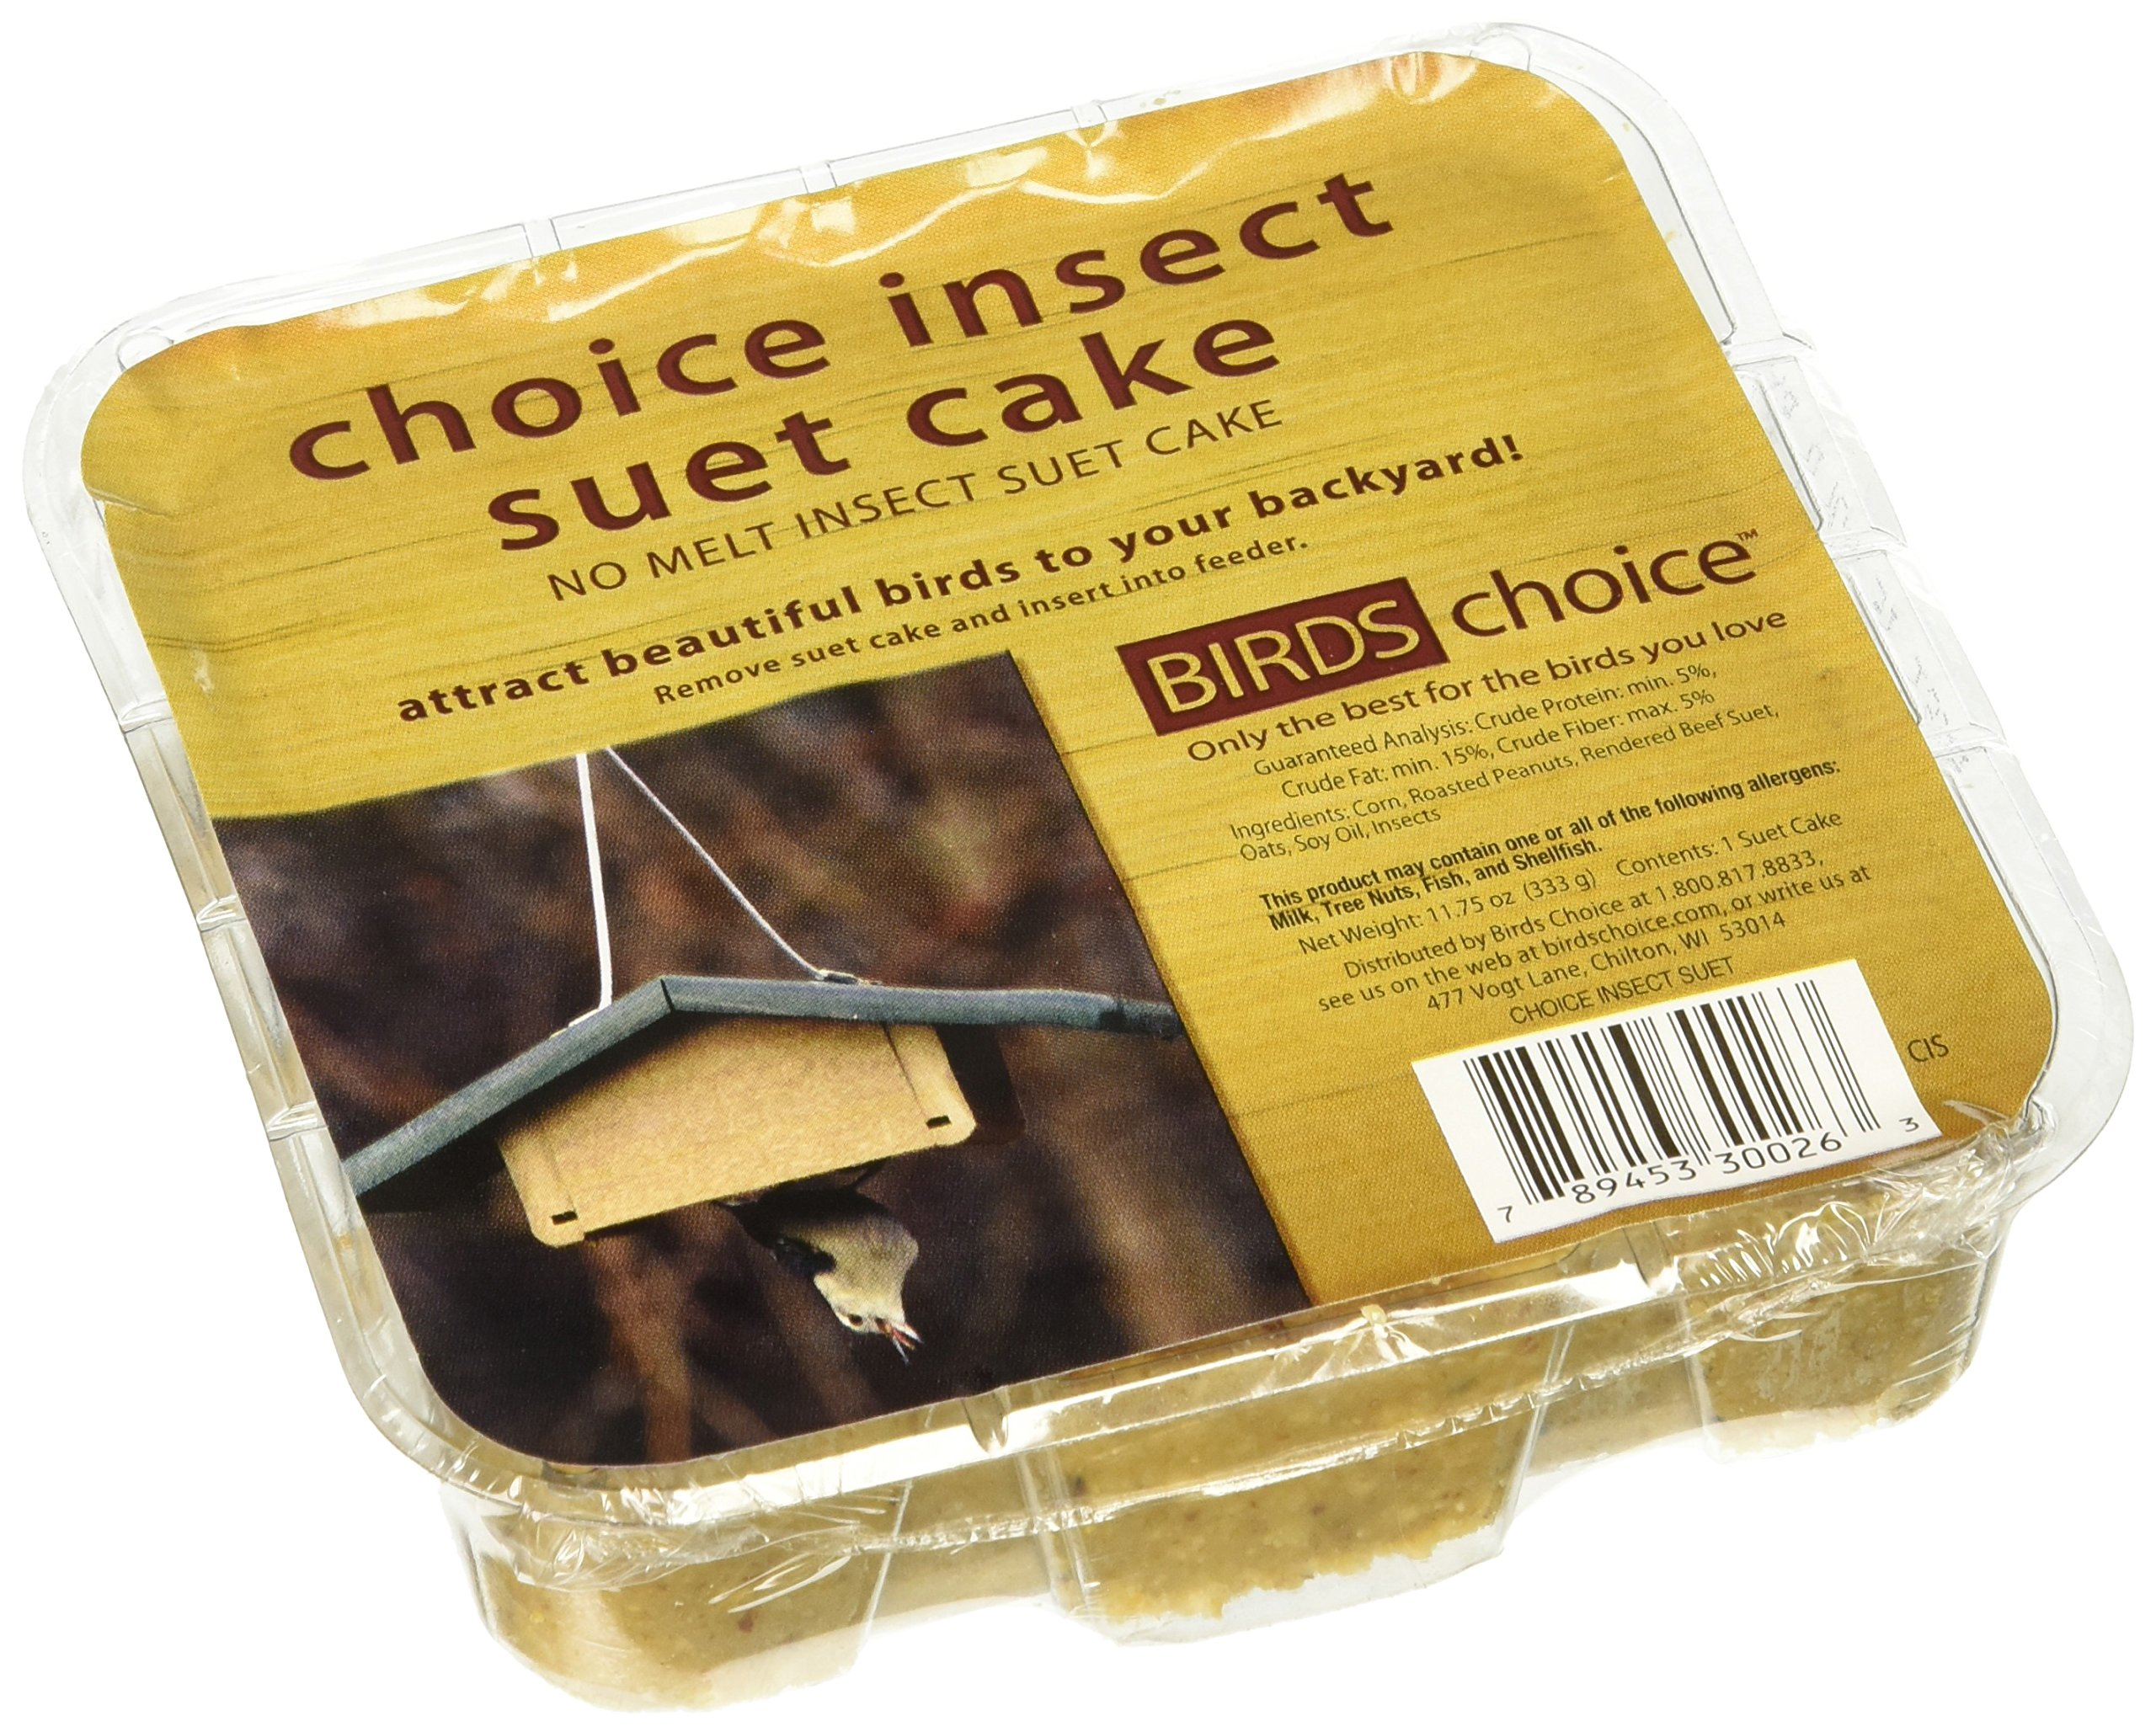 Birds Choice Insect Suet Cake 11.75 oz, Case of 12 by Birds Choice